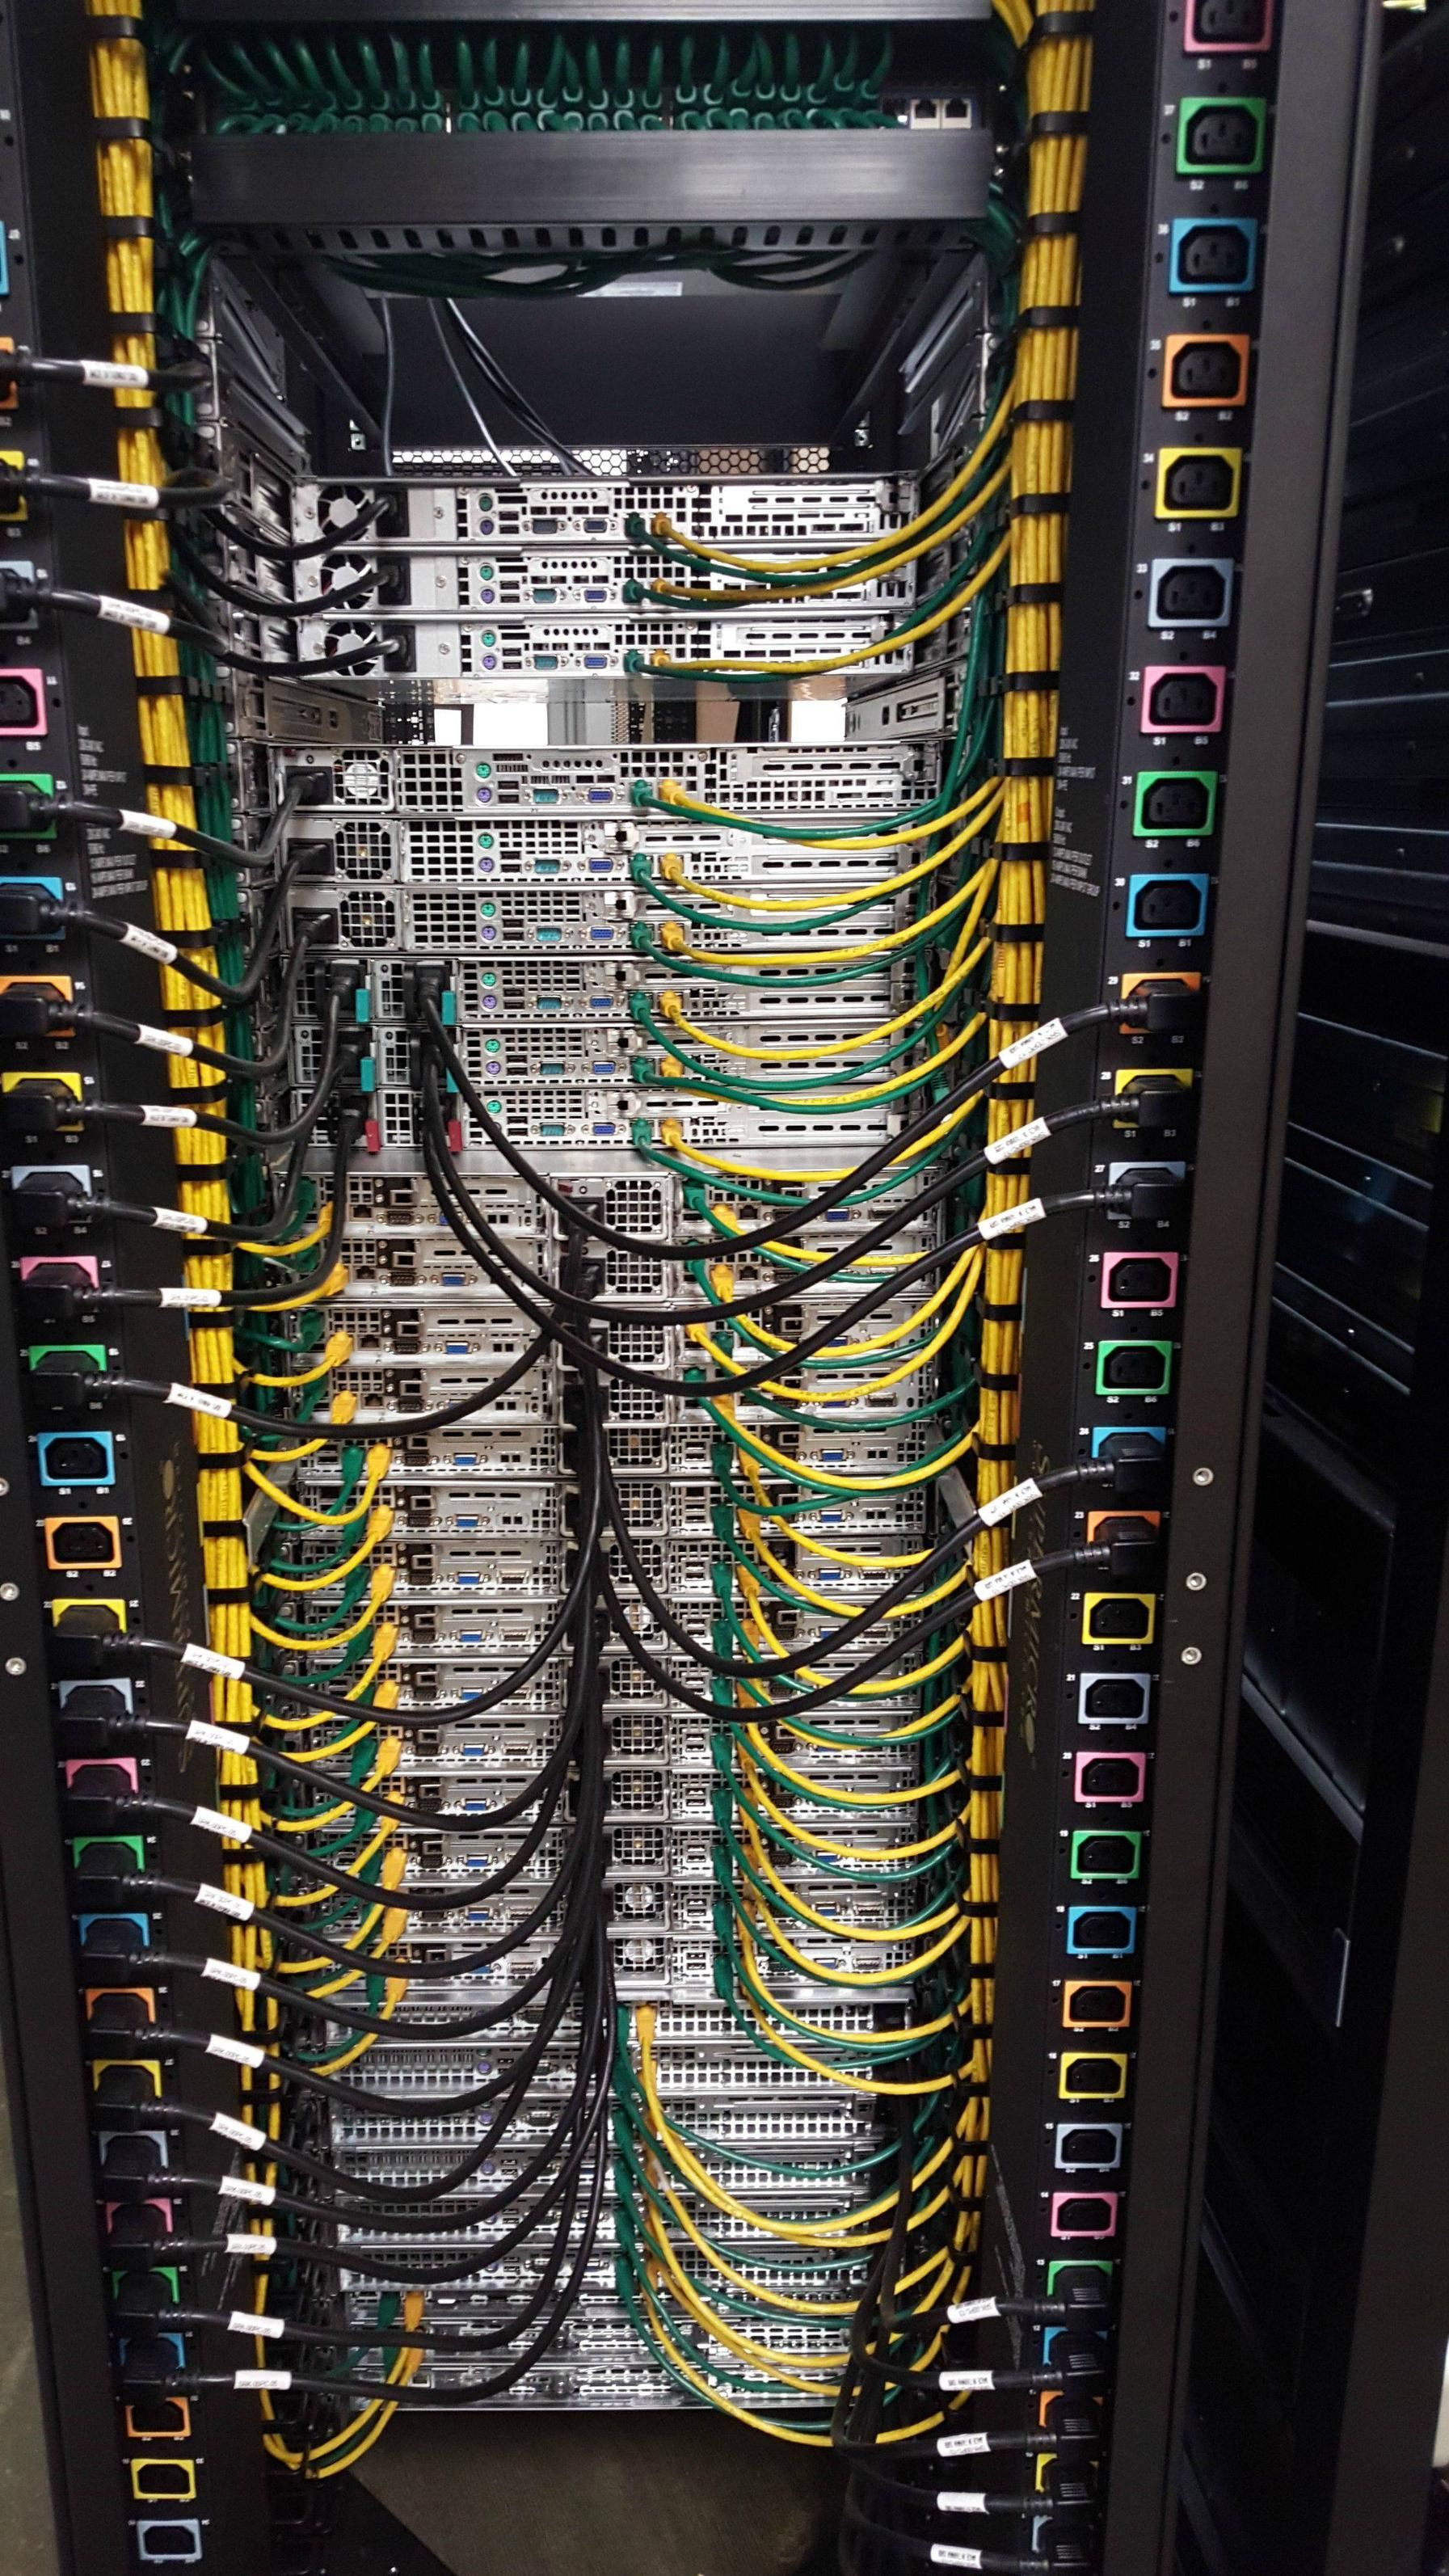 Structured Wiring Diagram Database Er Tool Our Rack Team 39s Work Cable Management Server